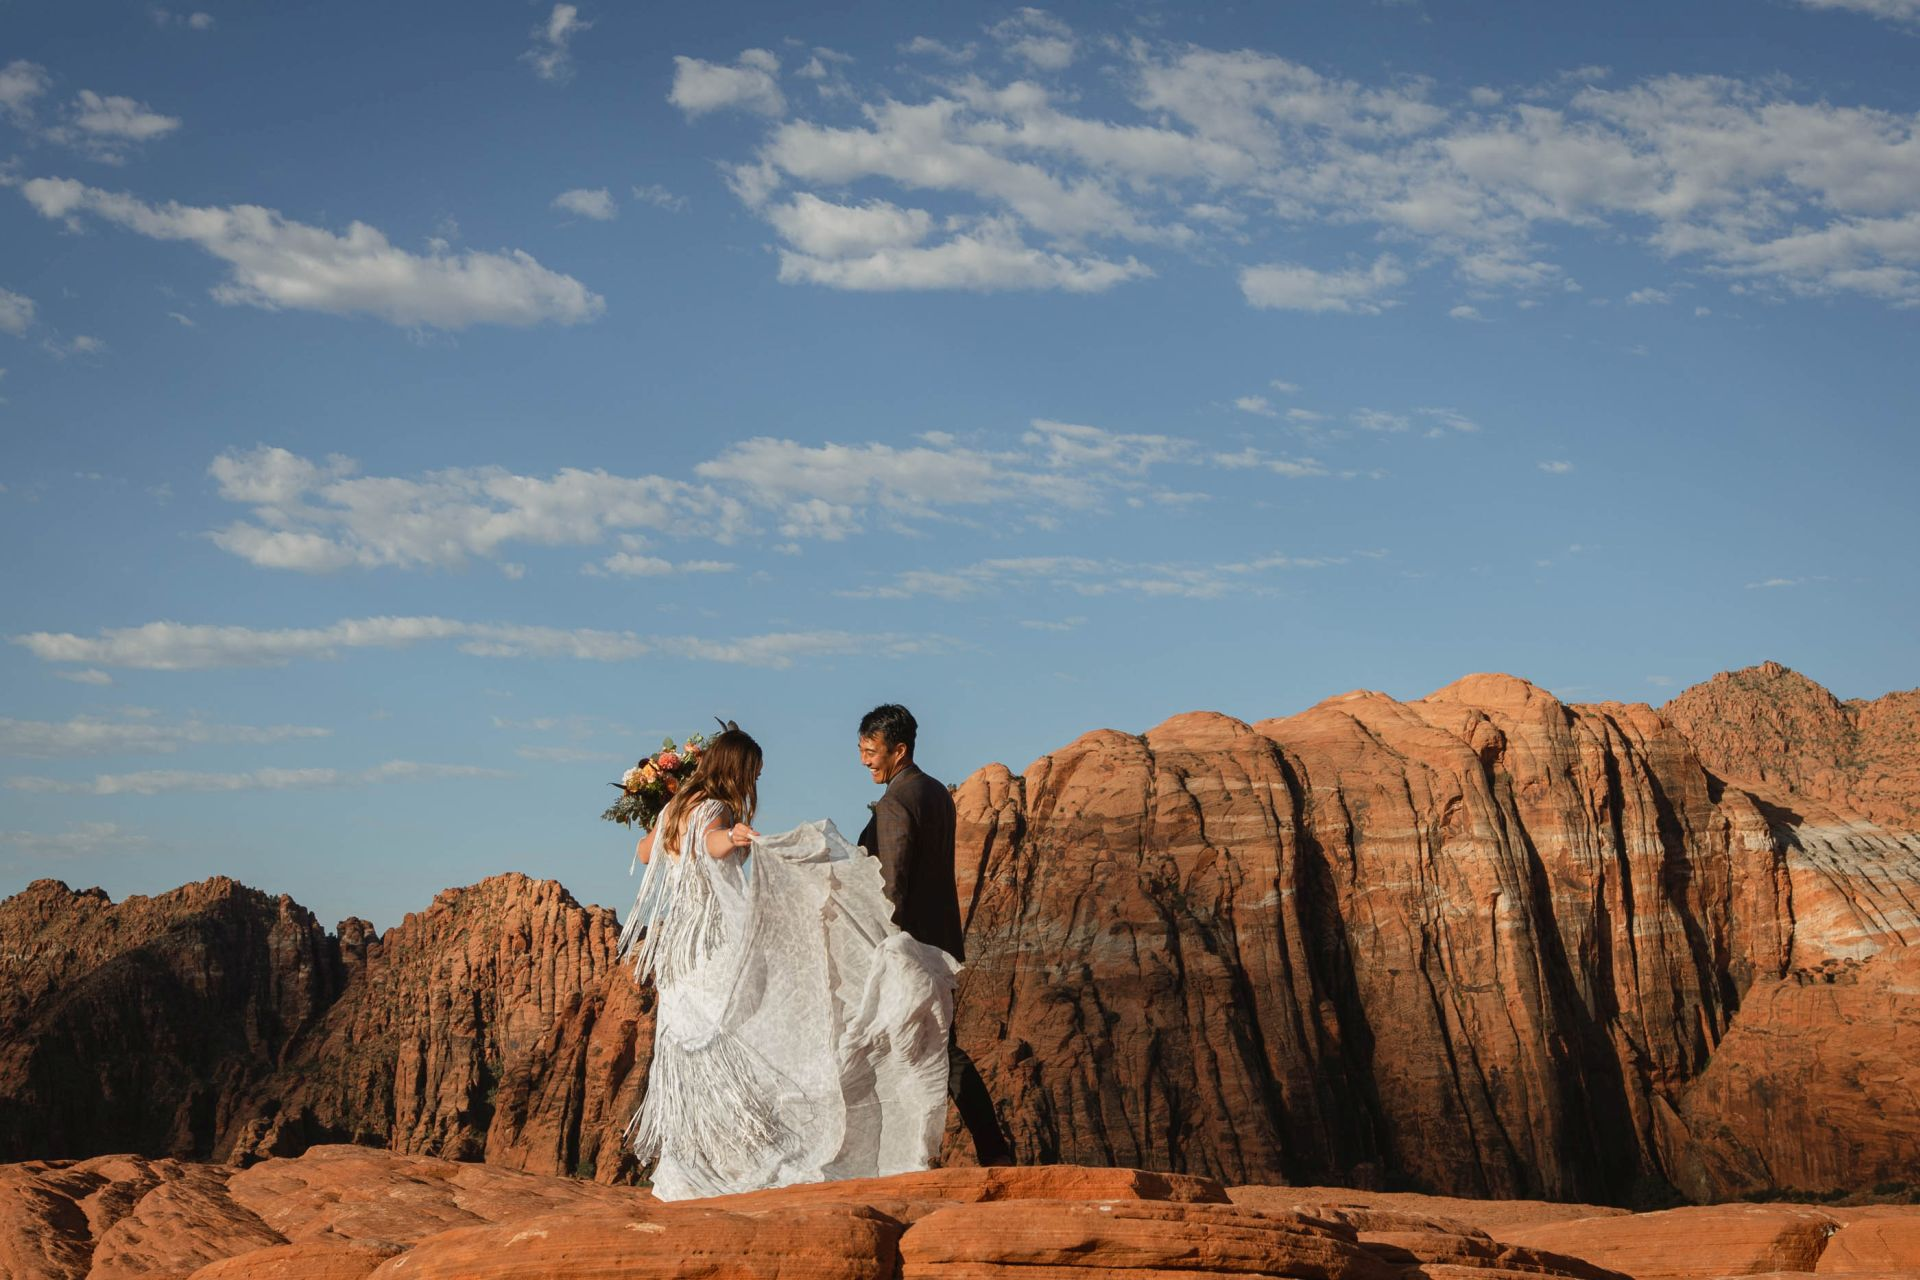 Hike-out wedding in the desert of Utah - couple adventuring in front of spectacular striped mountain range